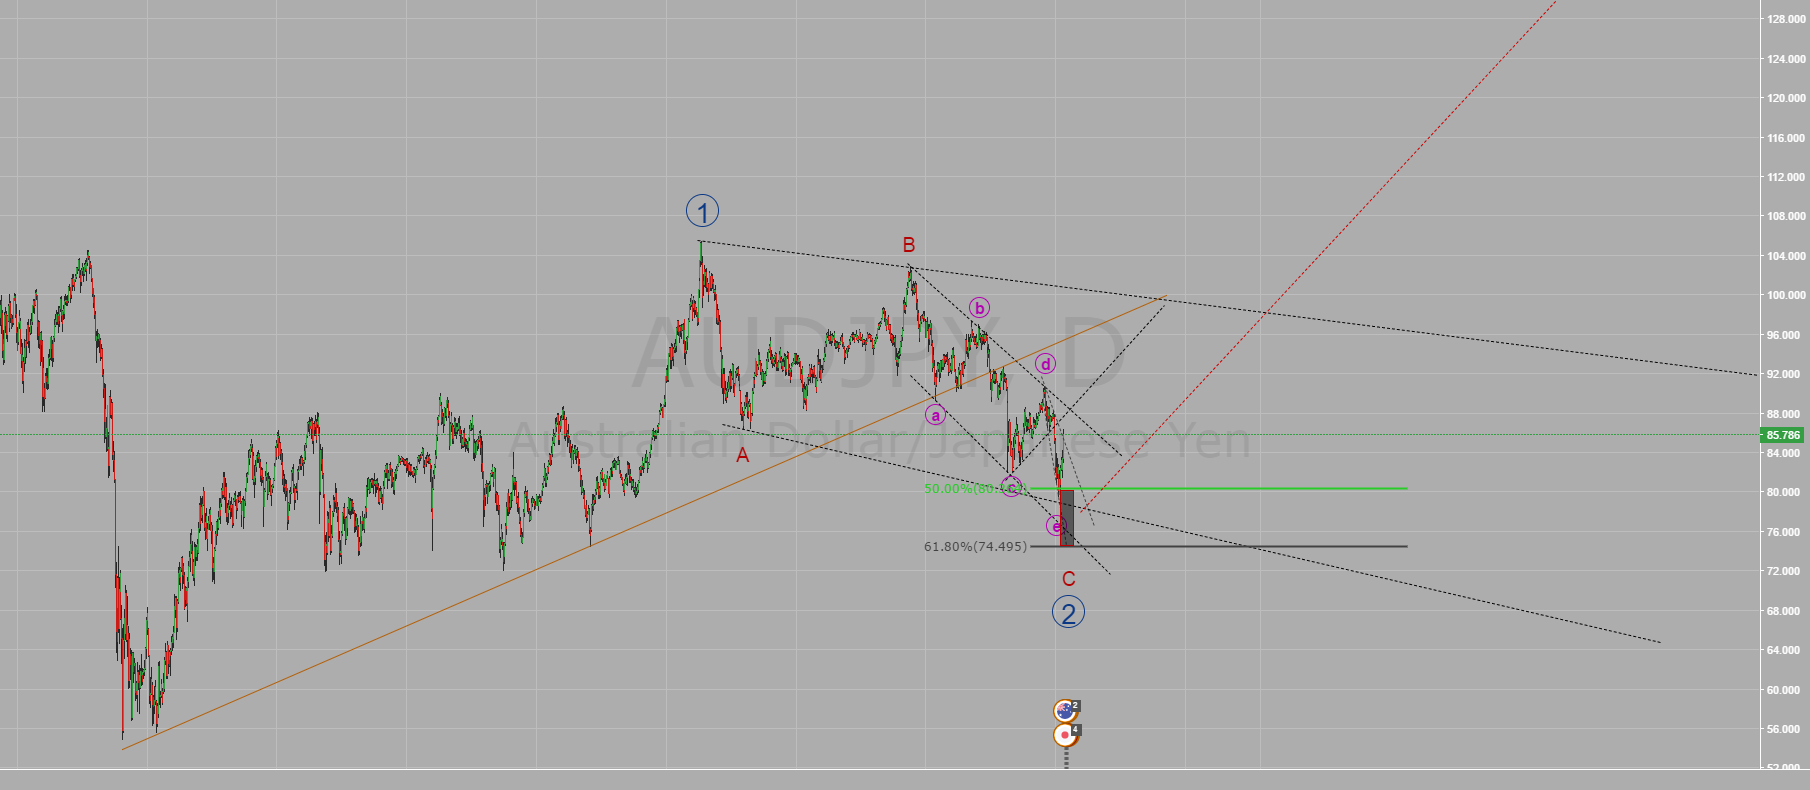 AUDJPY get ready to start the big move to 3 wave